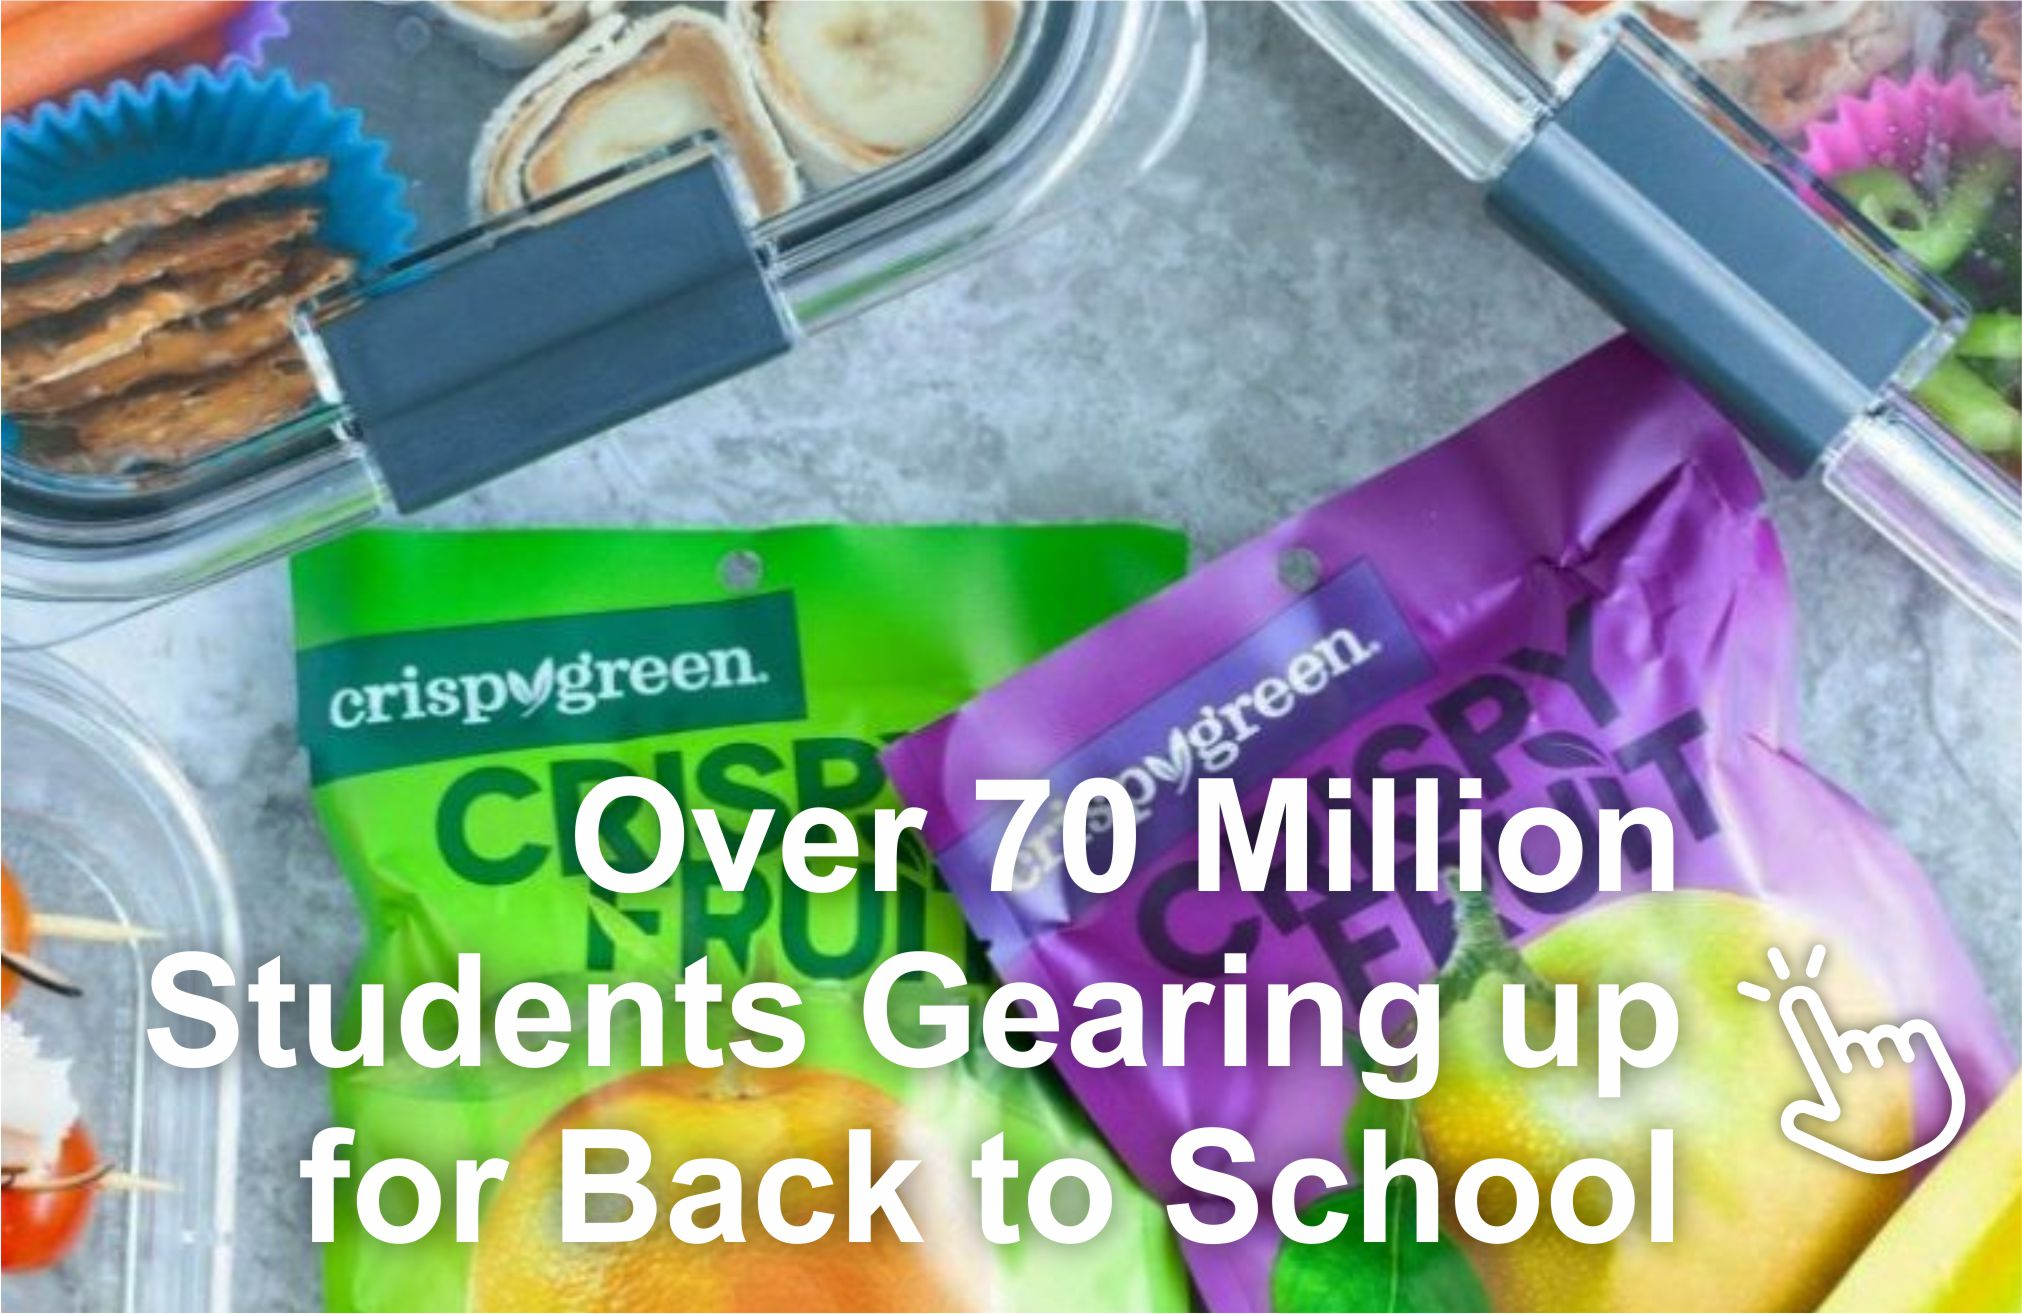 Over 70 Million Students Gearing up for Back to School